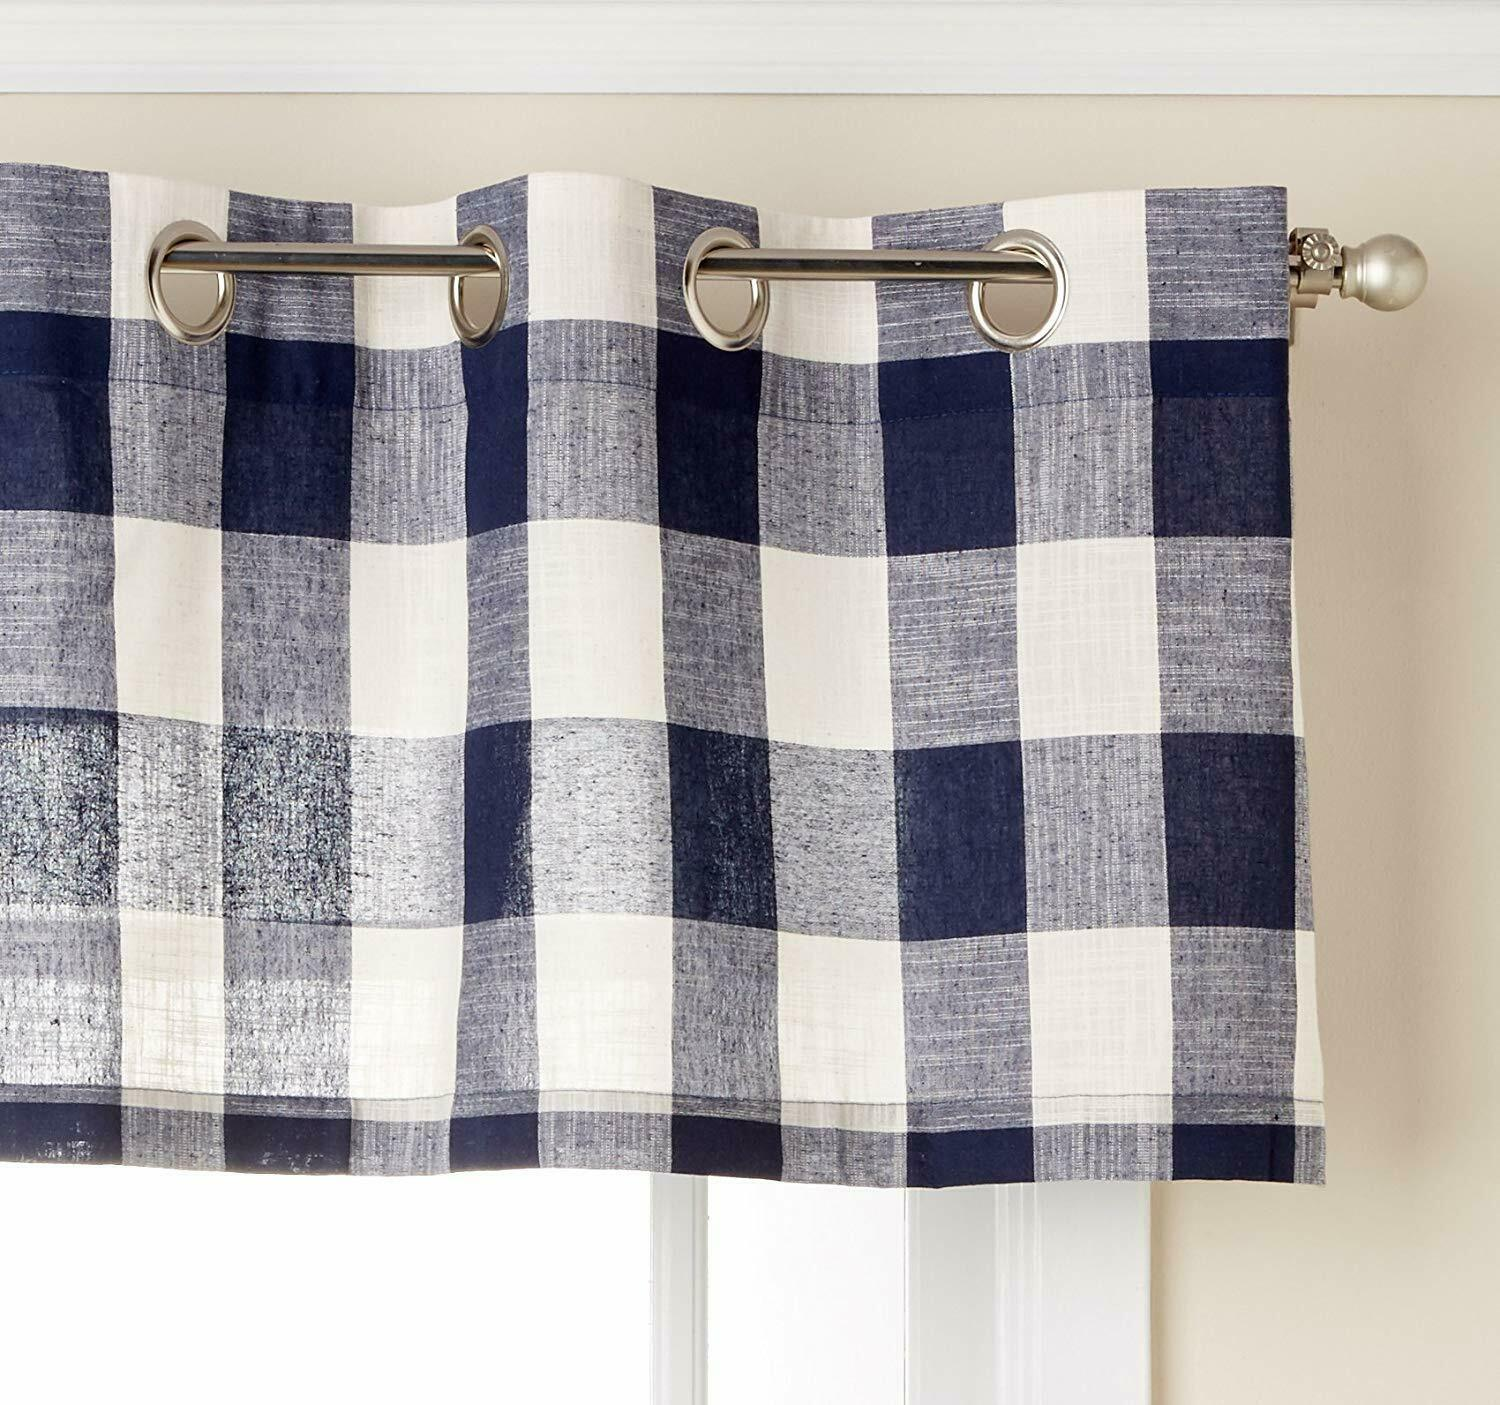 "Primary image for Courtyard Plaid Woven Curtain Valance with Grommets, Navy, 18"" length, Lorraine"